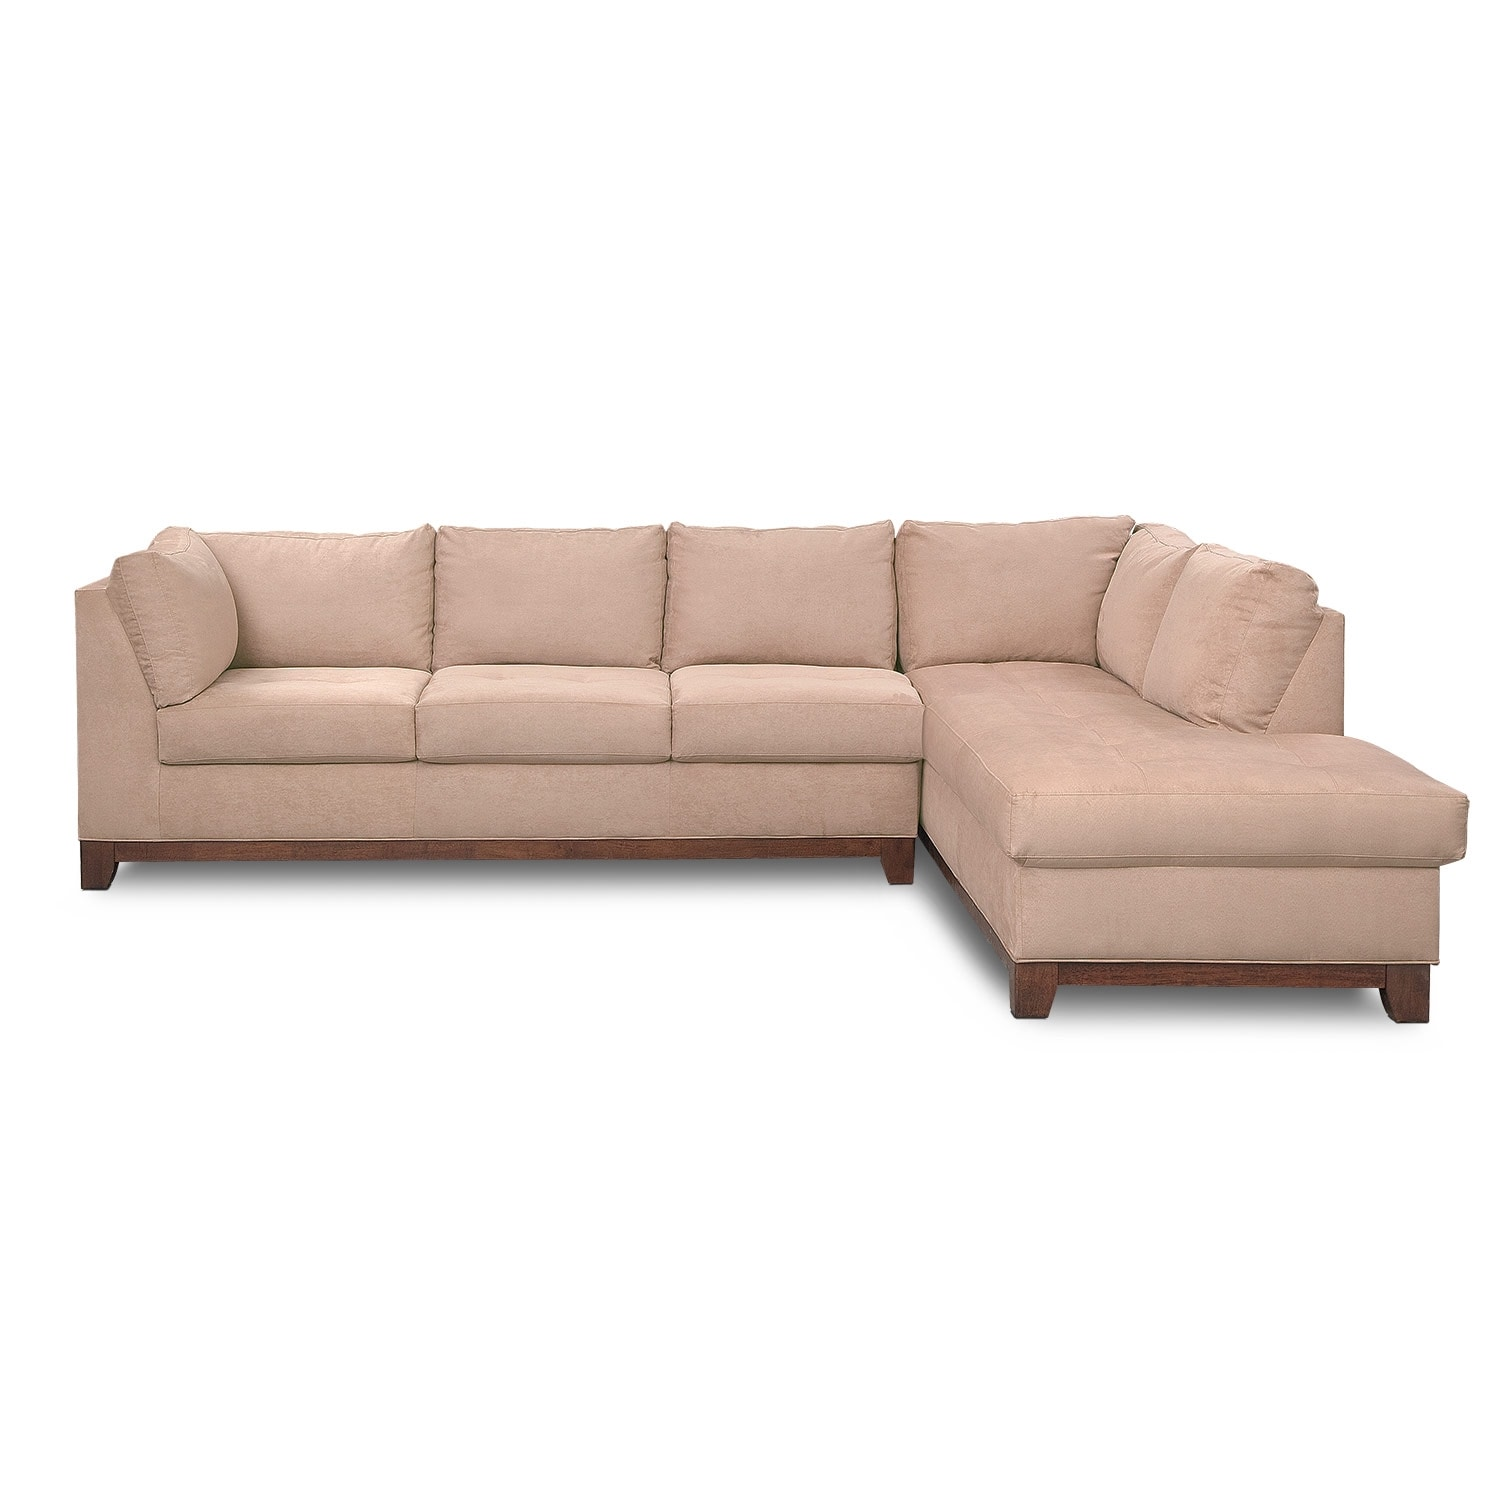 Soho 2 Piece Sectional with Right Facing Chaise Cobblestone